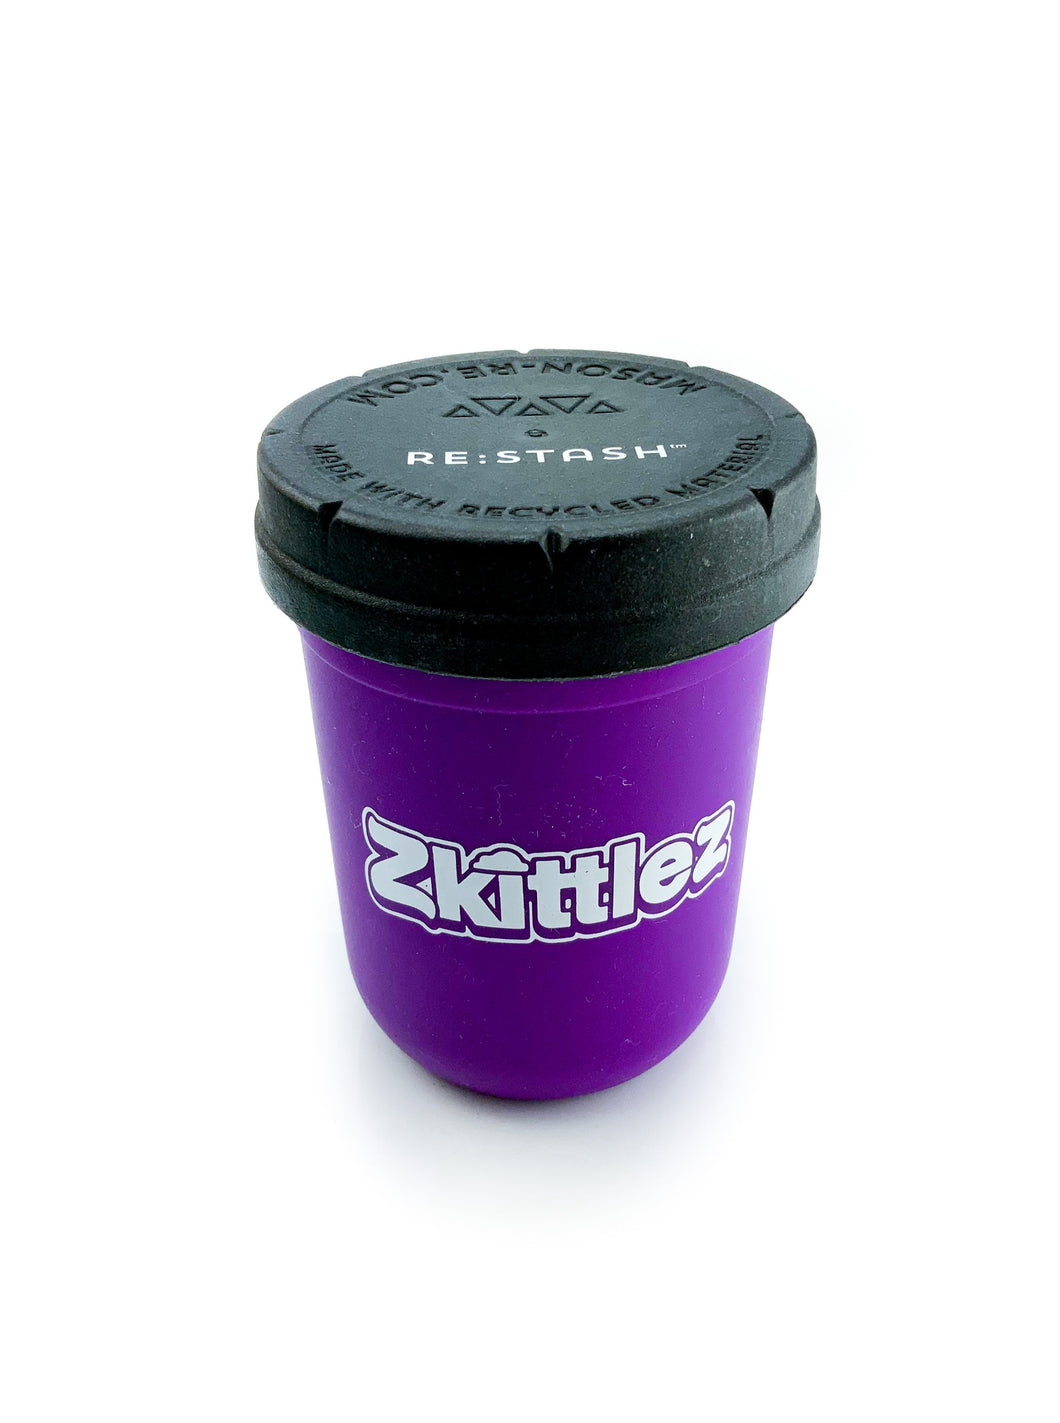 Re:stash 8oz Jar Zkittlez Purple